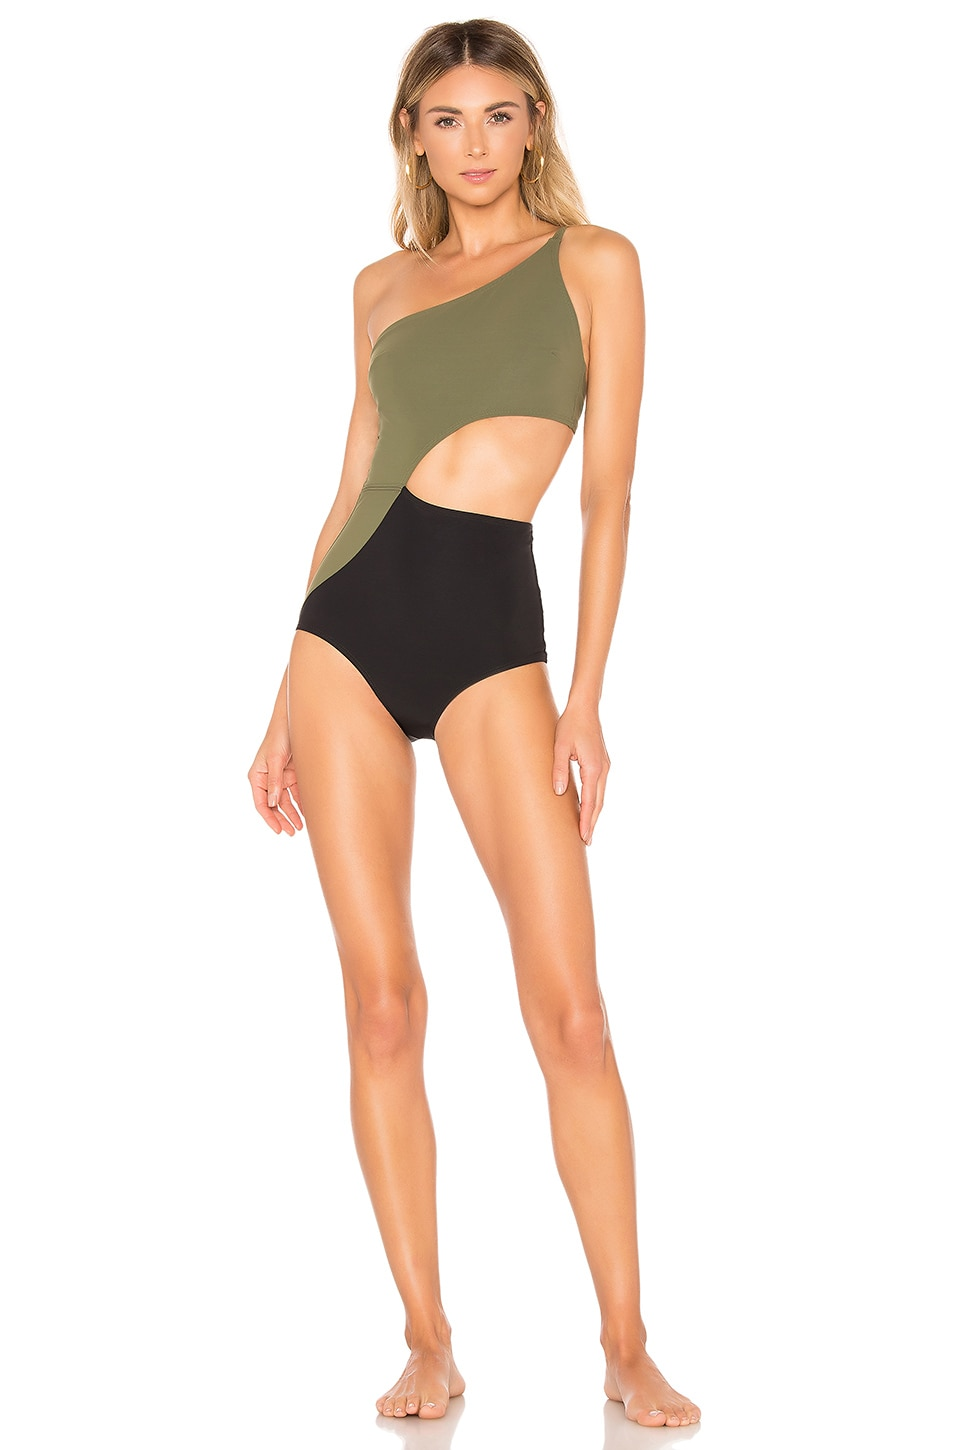 FLAGPOLE Ali One Piece in Olive & Black